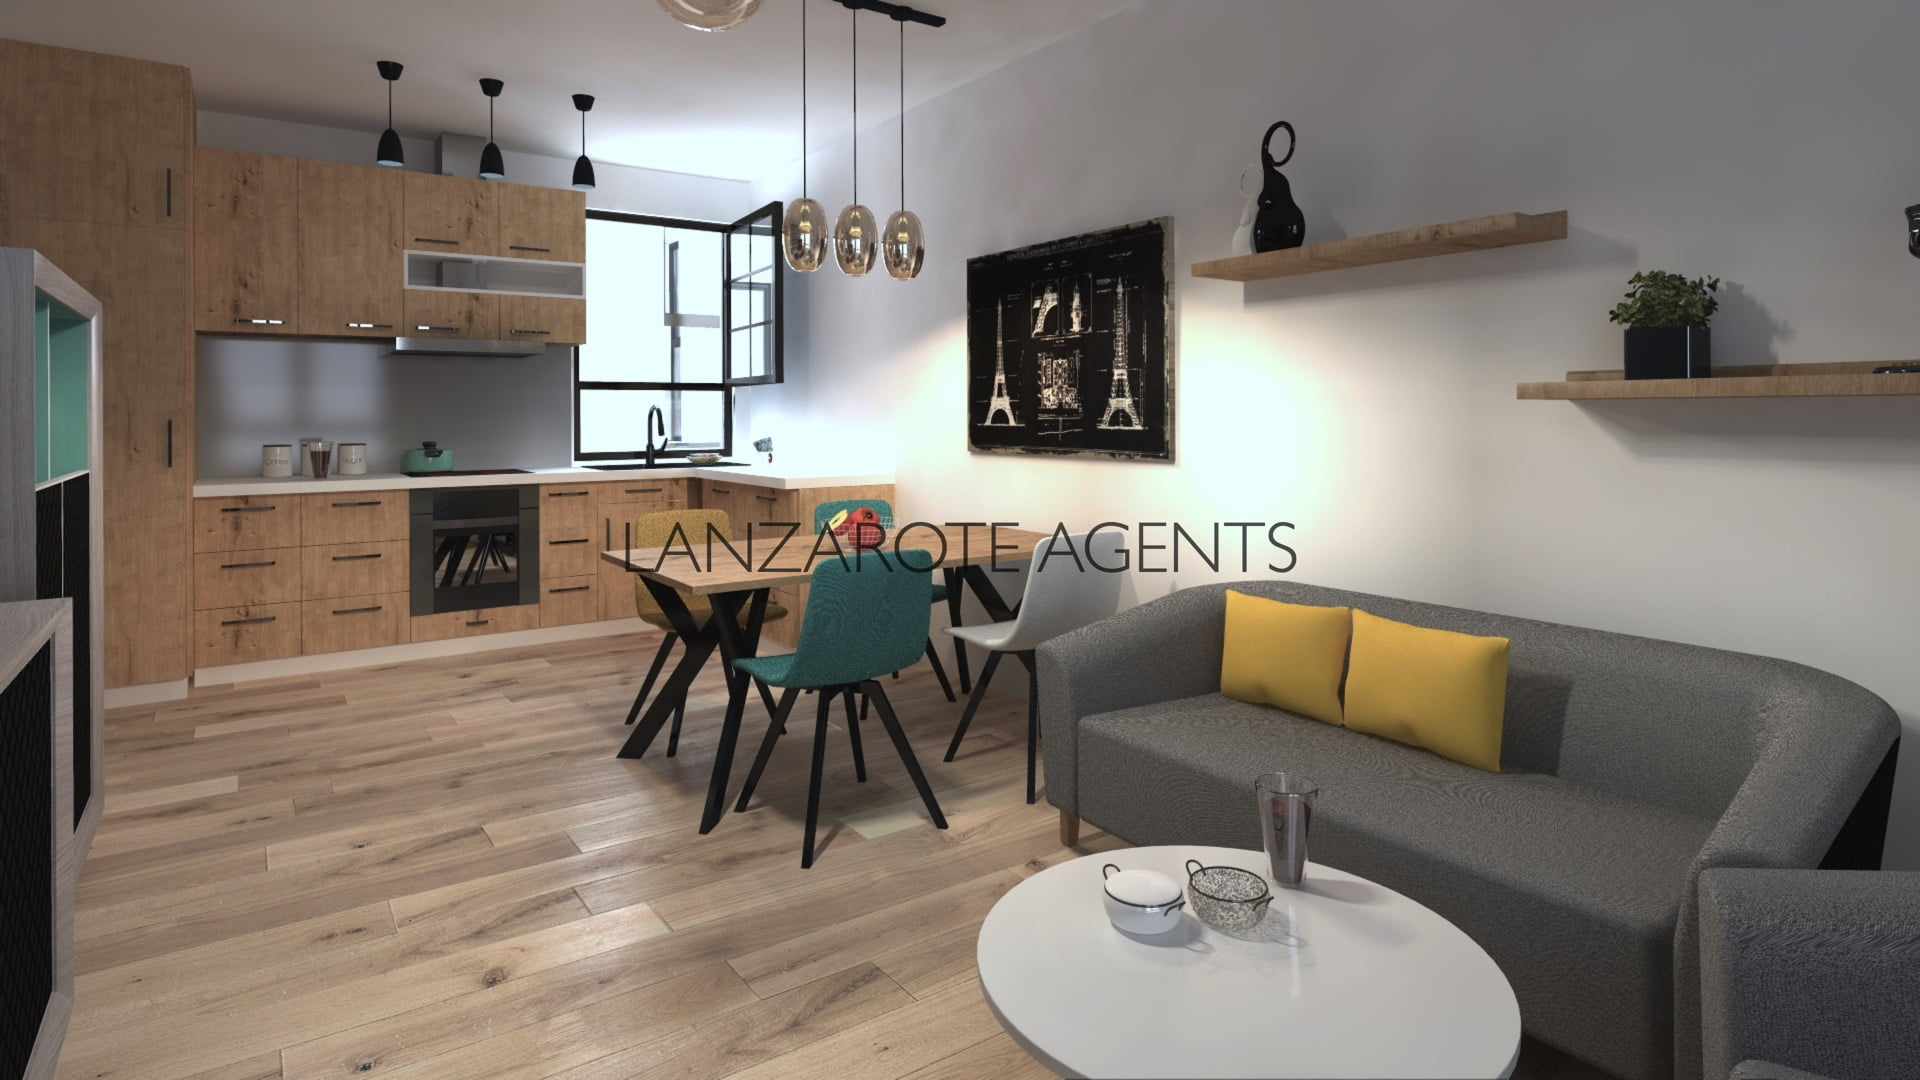 Brand New Modern Apartments in La Santa, with Huge Terrace and Potential for Rentals